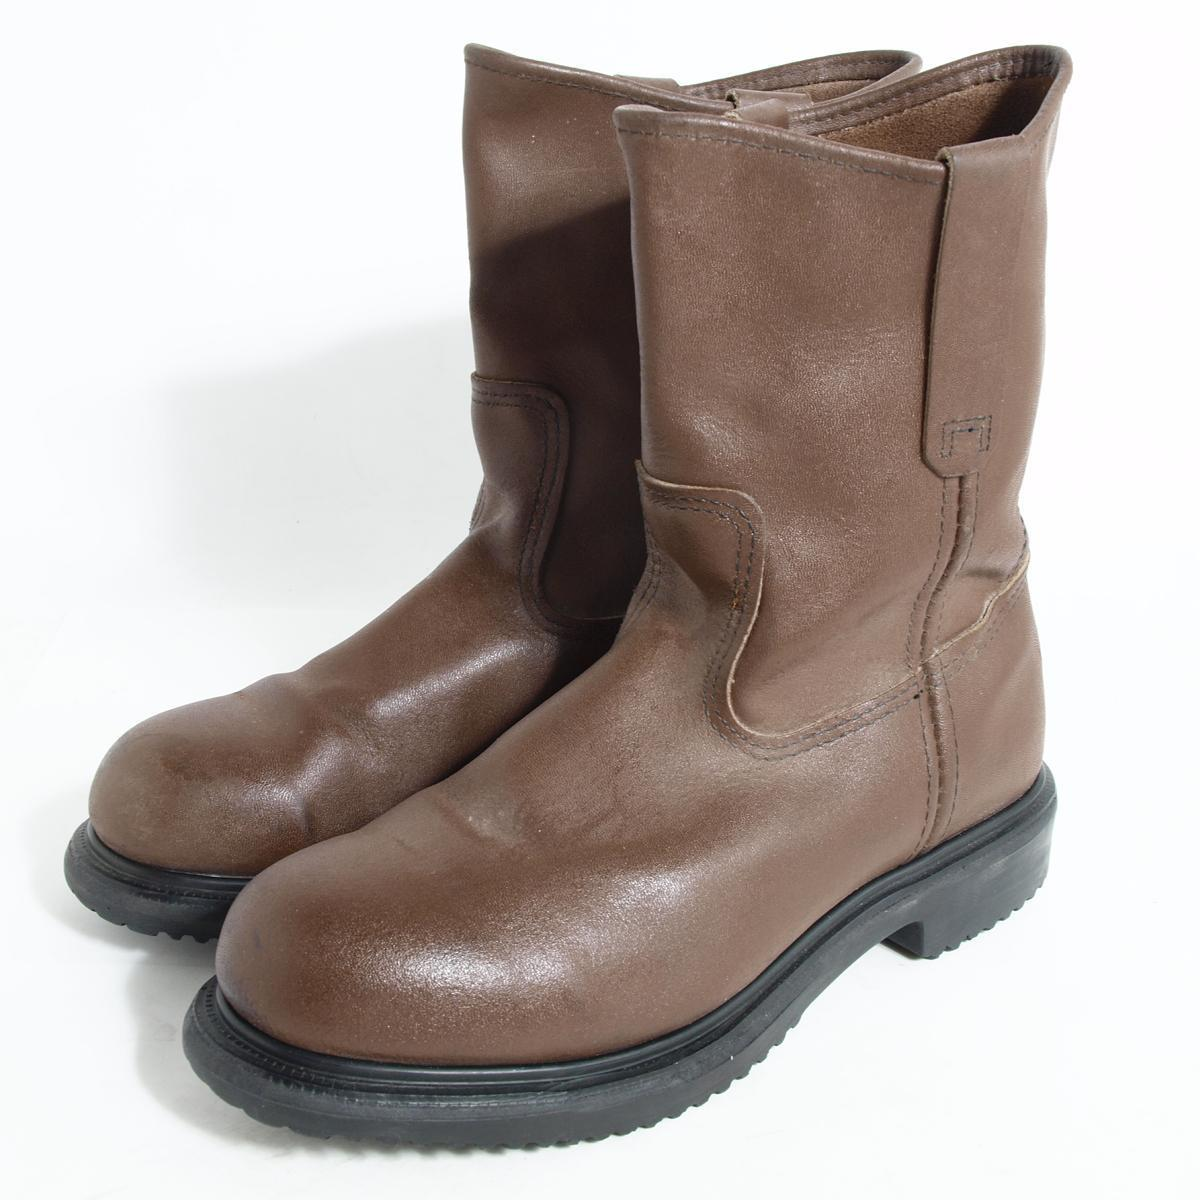 Red Wing Boots Price List Coltford Boots